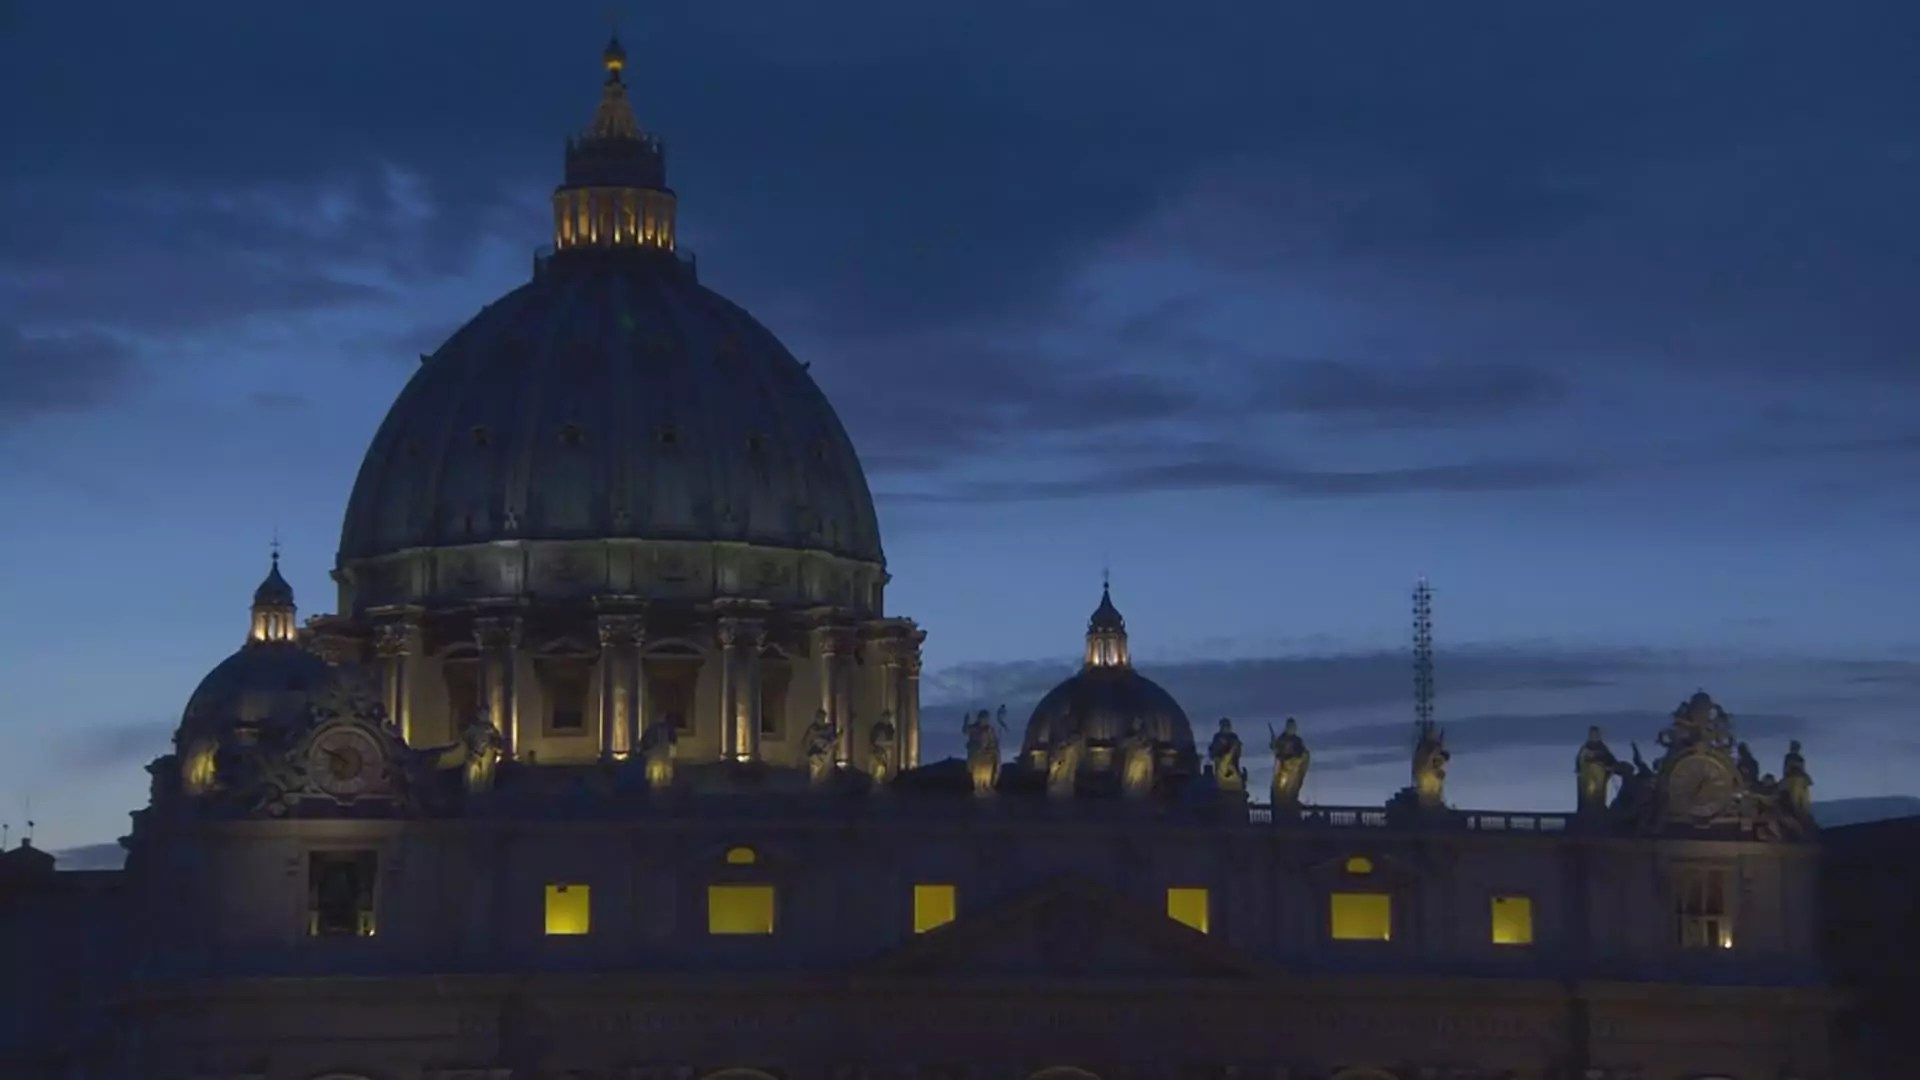 The Vatican at night.